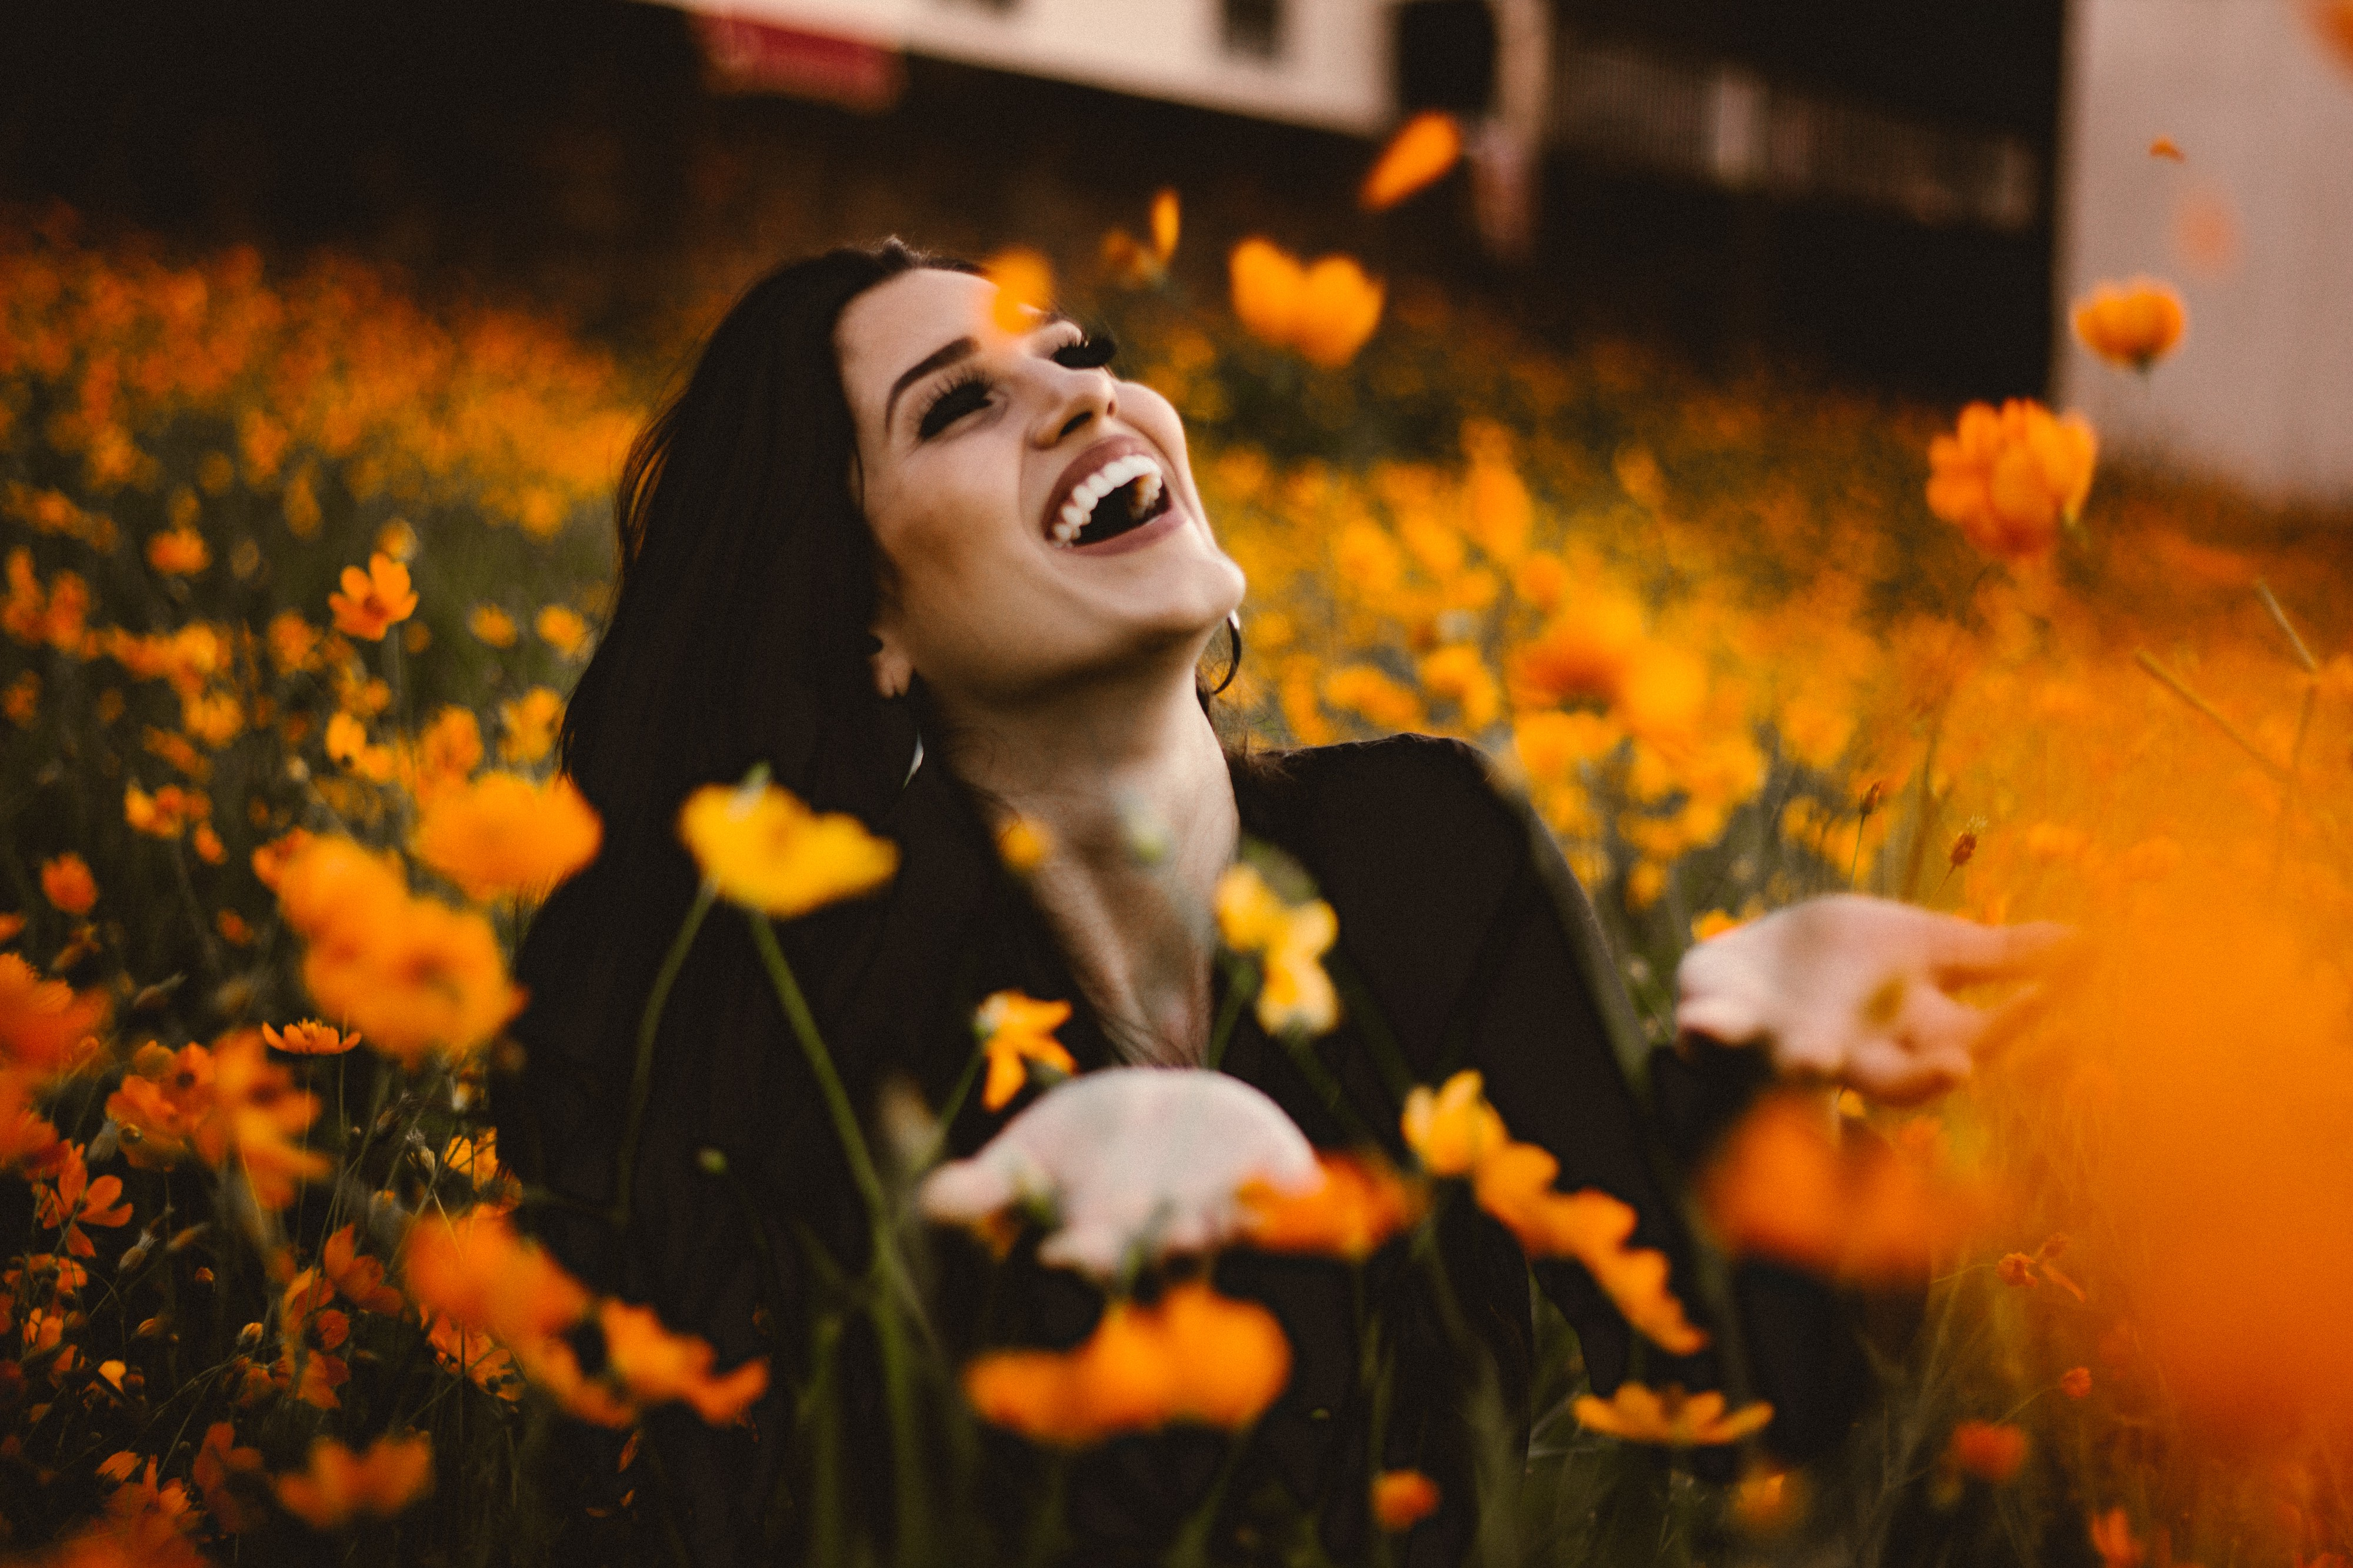 Smiling women wearing light makeup, golden ear loops and black shirt in field of orange flowers with open palms pointing upwards, looking up. She seems content about life.